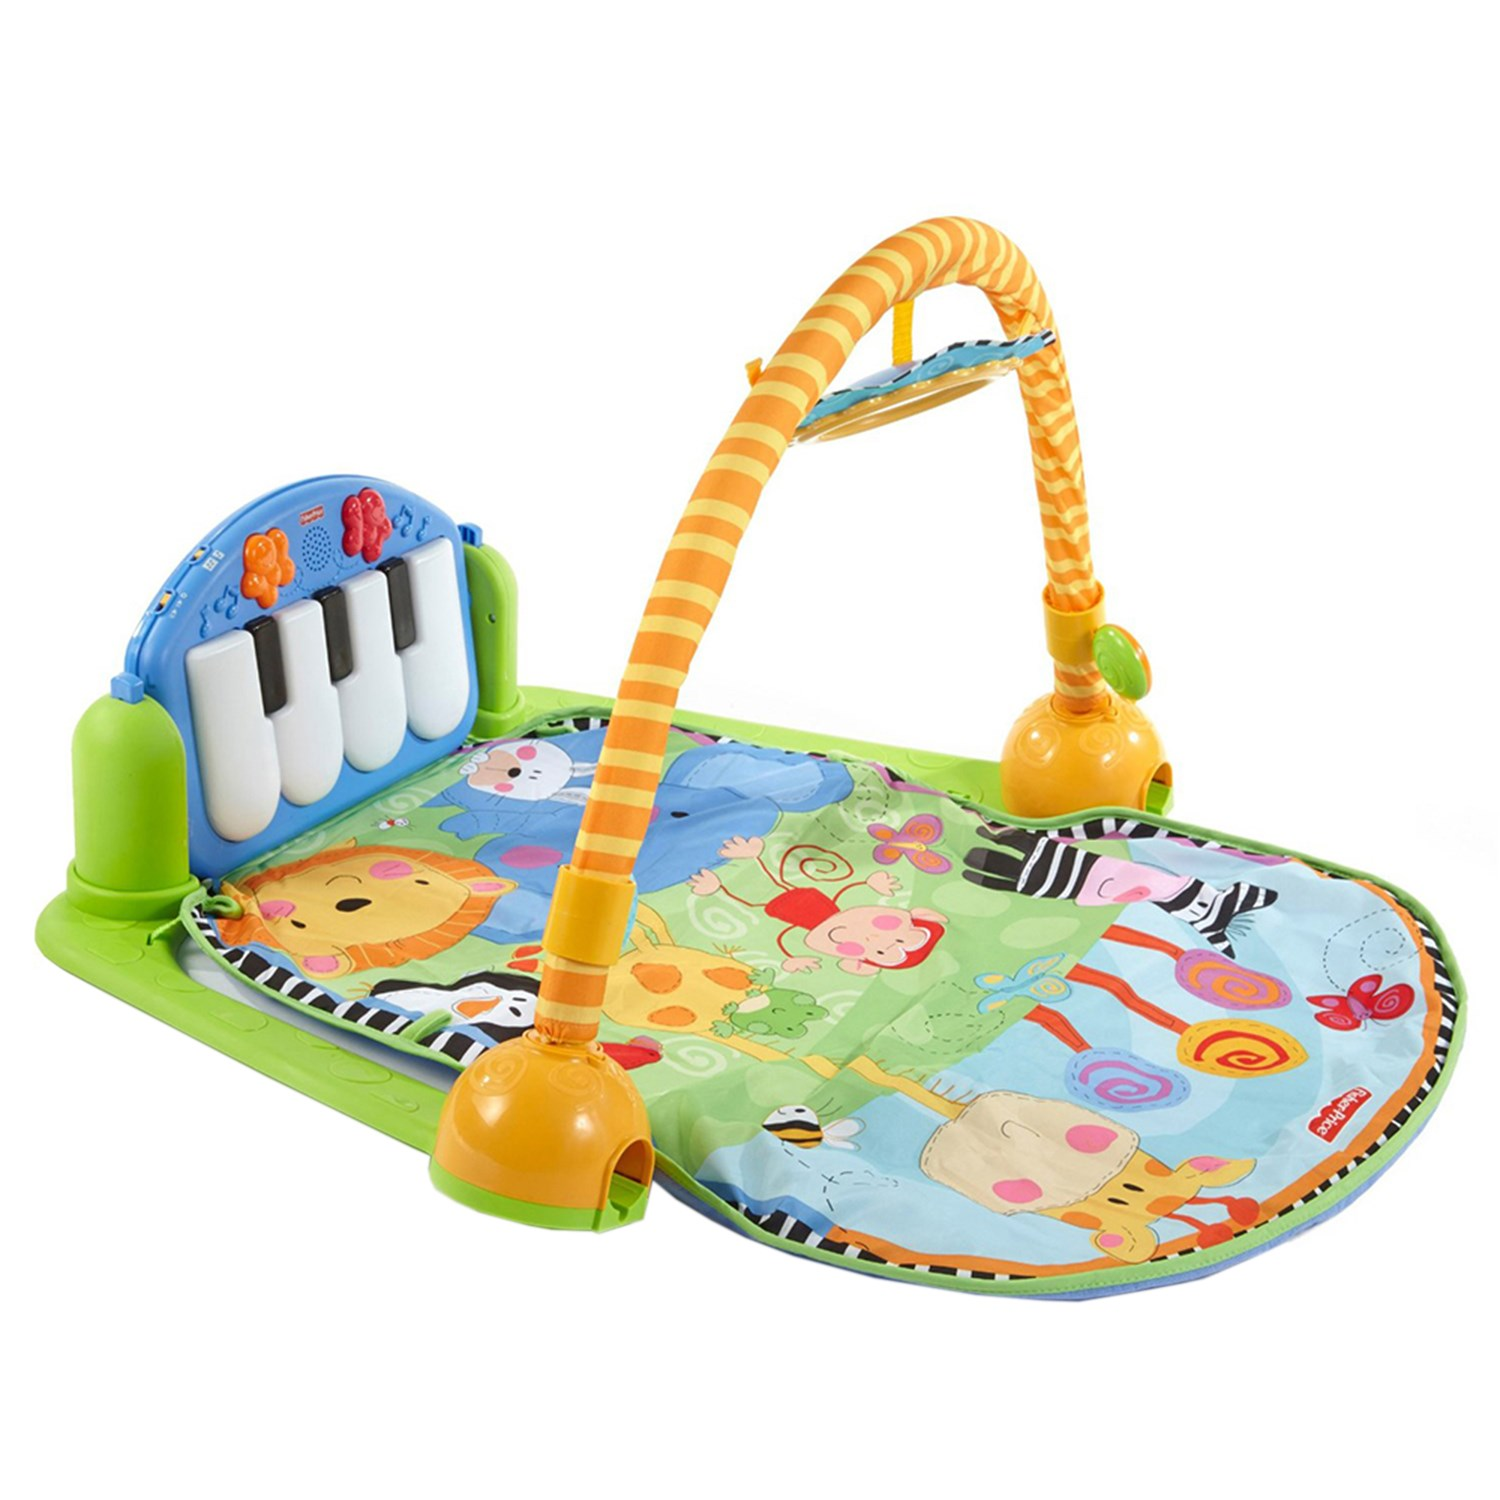 Fisher Price BMH49 Kick & Play Piano Gym